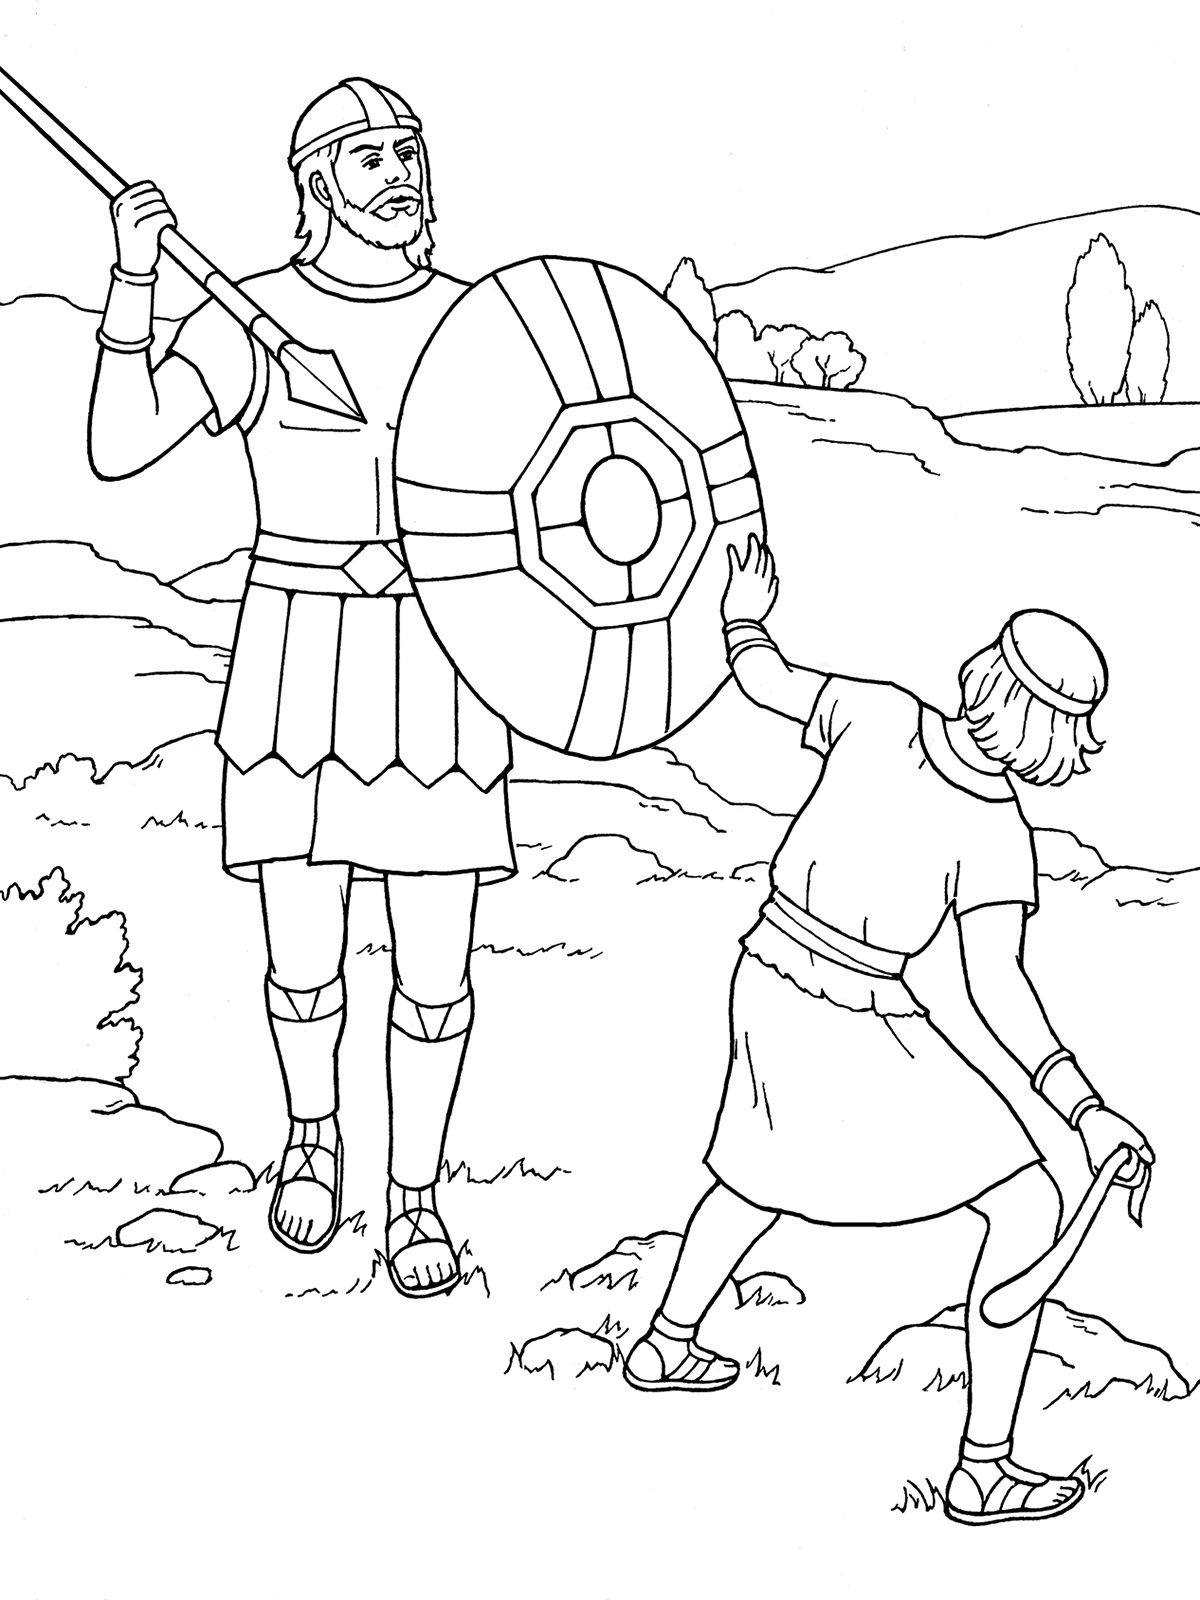 David and Goliath Coloring Pages Sunday school coloring